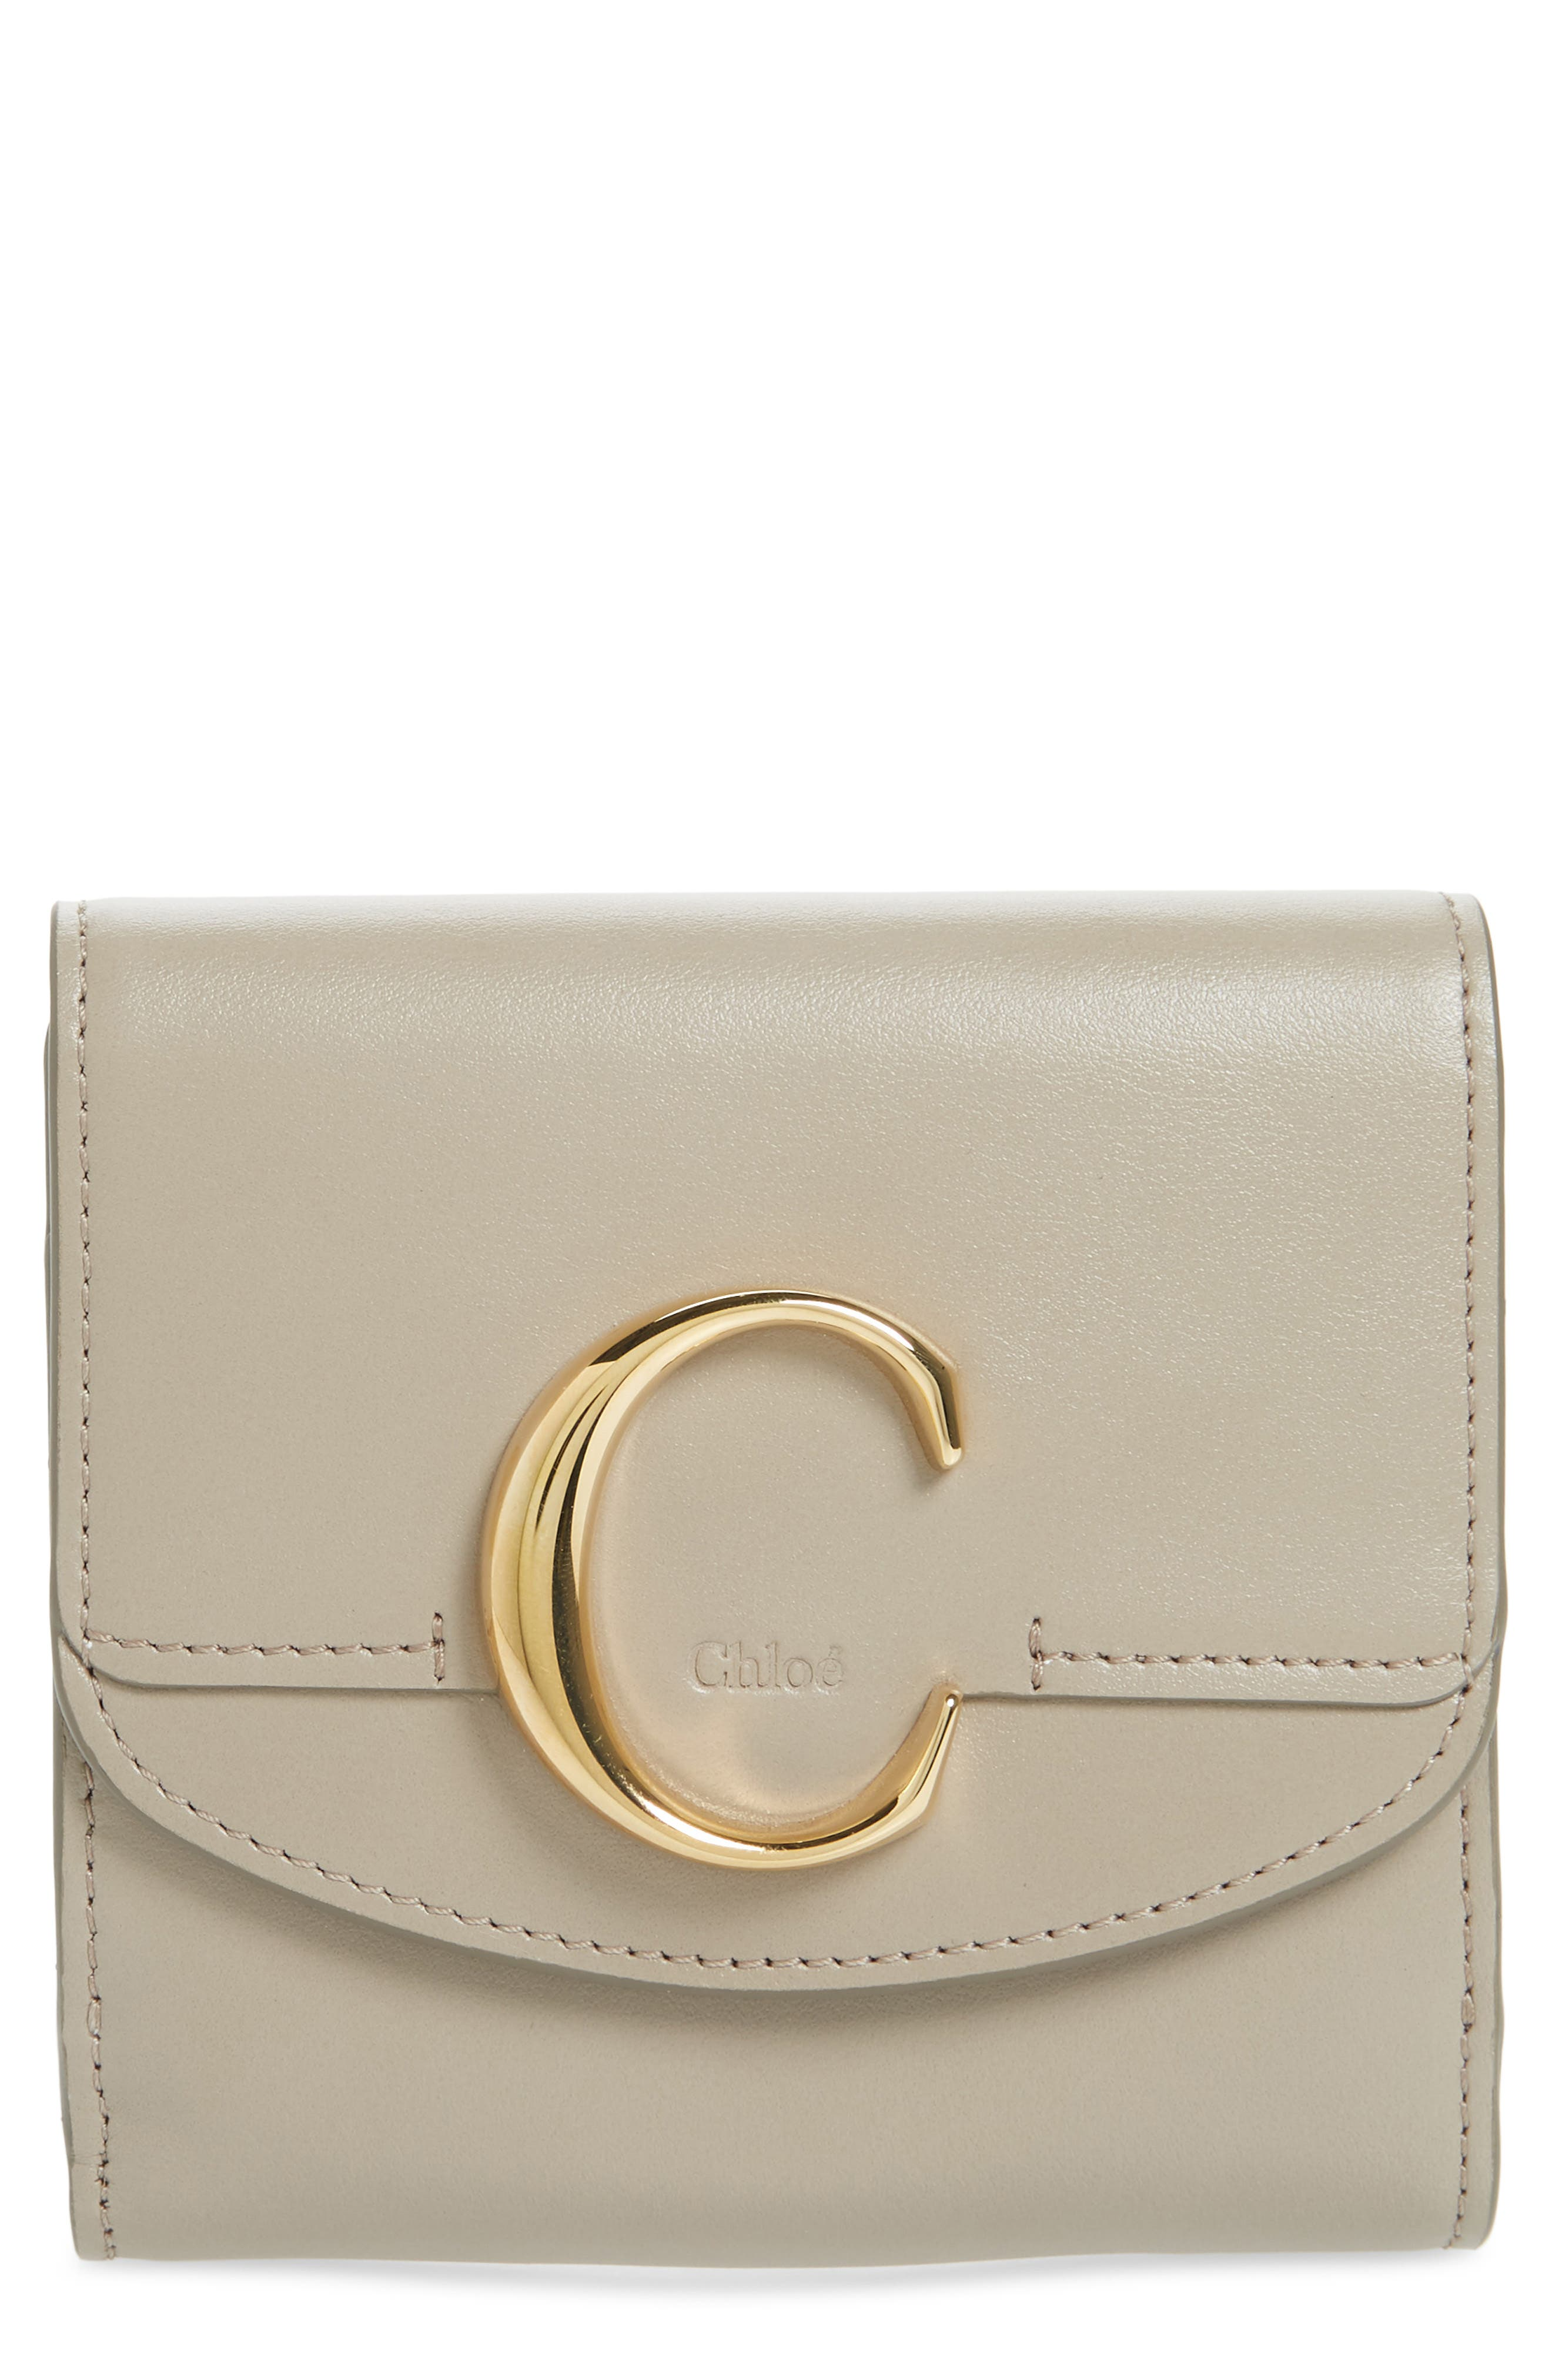 CHLOÉ, Square Leather Wallet, Main thumbnail 1, color, MOTTY GREY